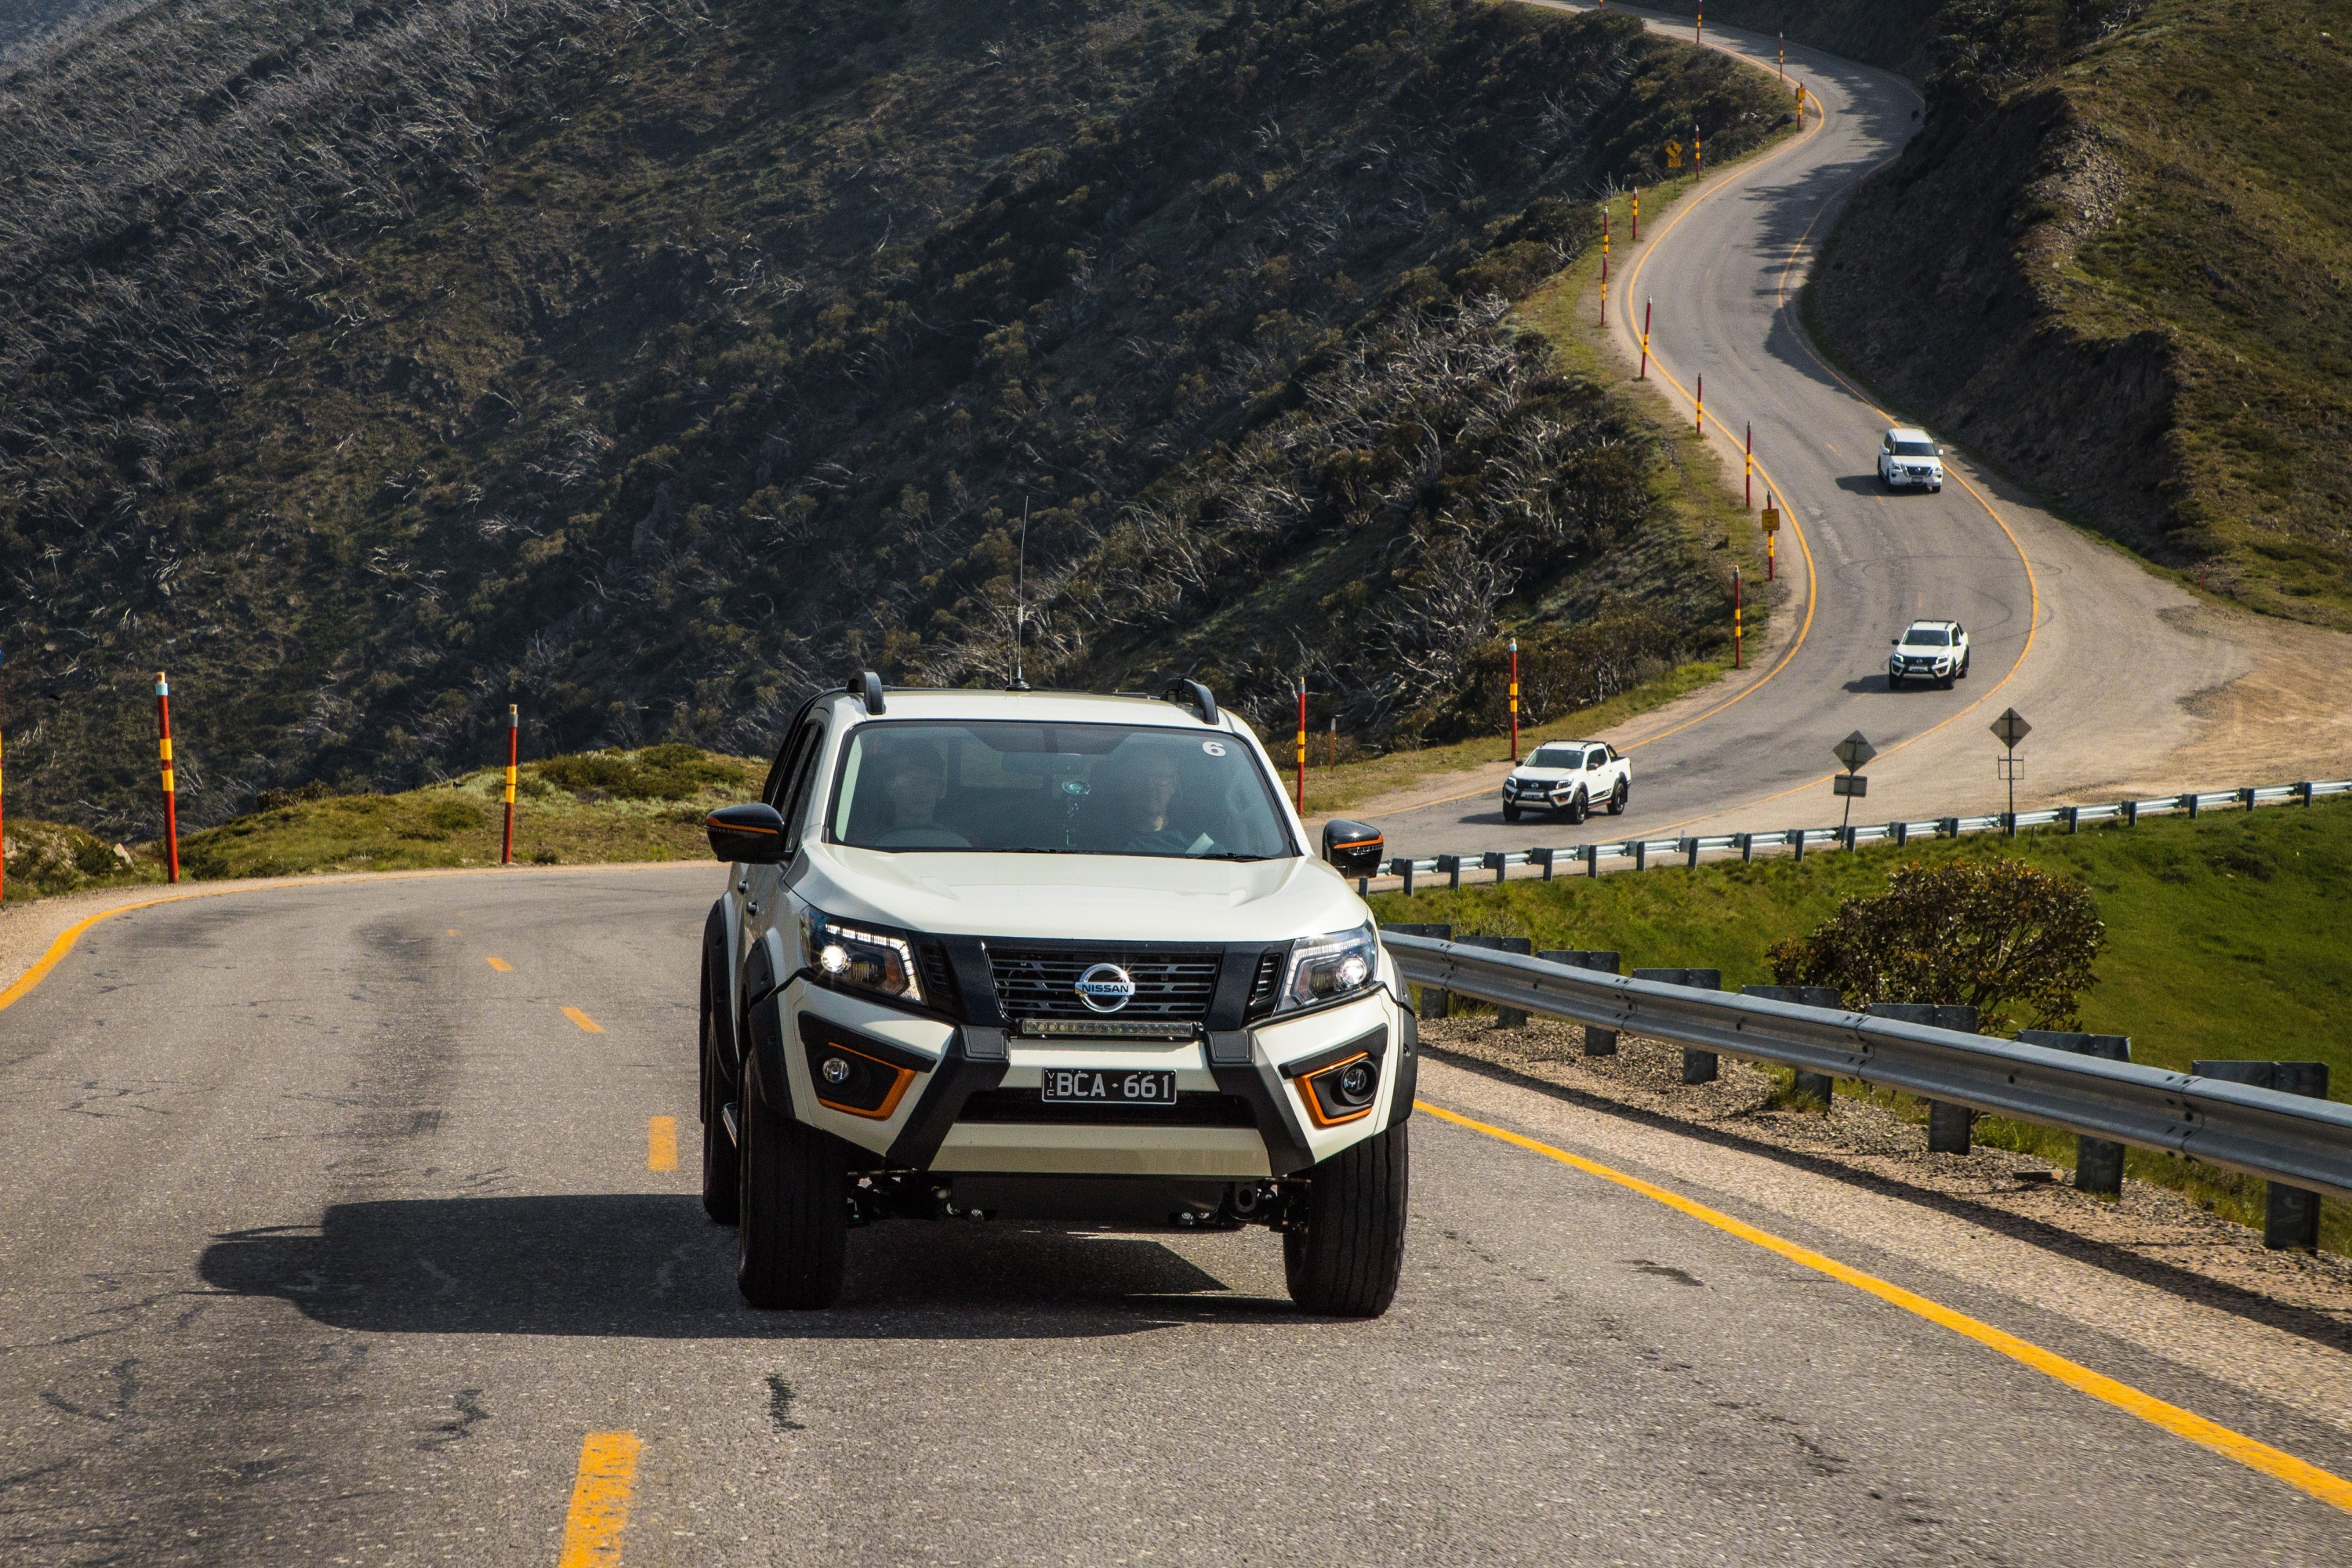 Nissan Navara N-TREK Warrior 18 driving